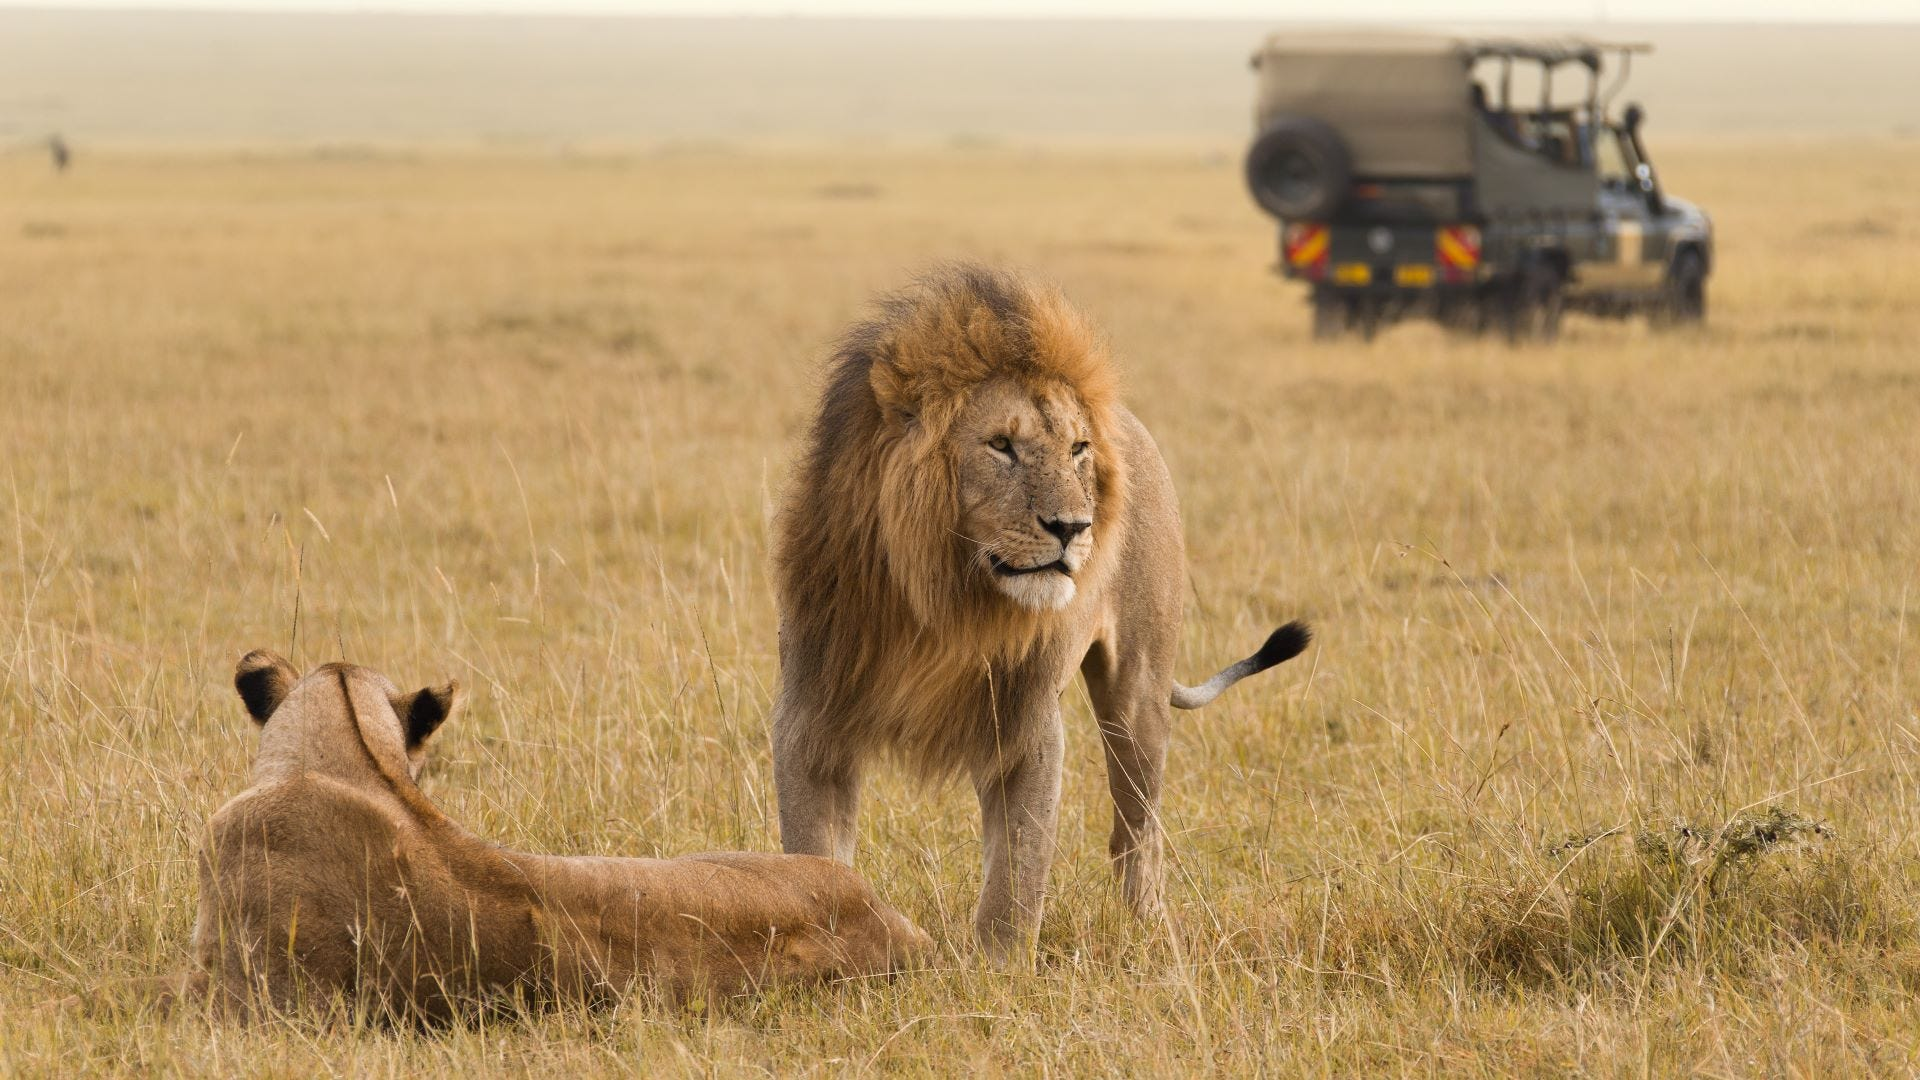 A male and female lion and a safari jeep in the background.